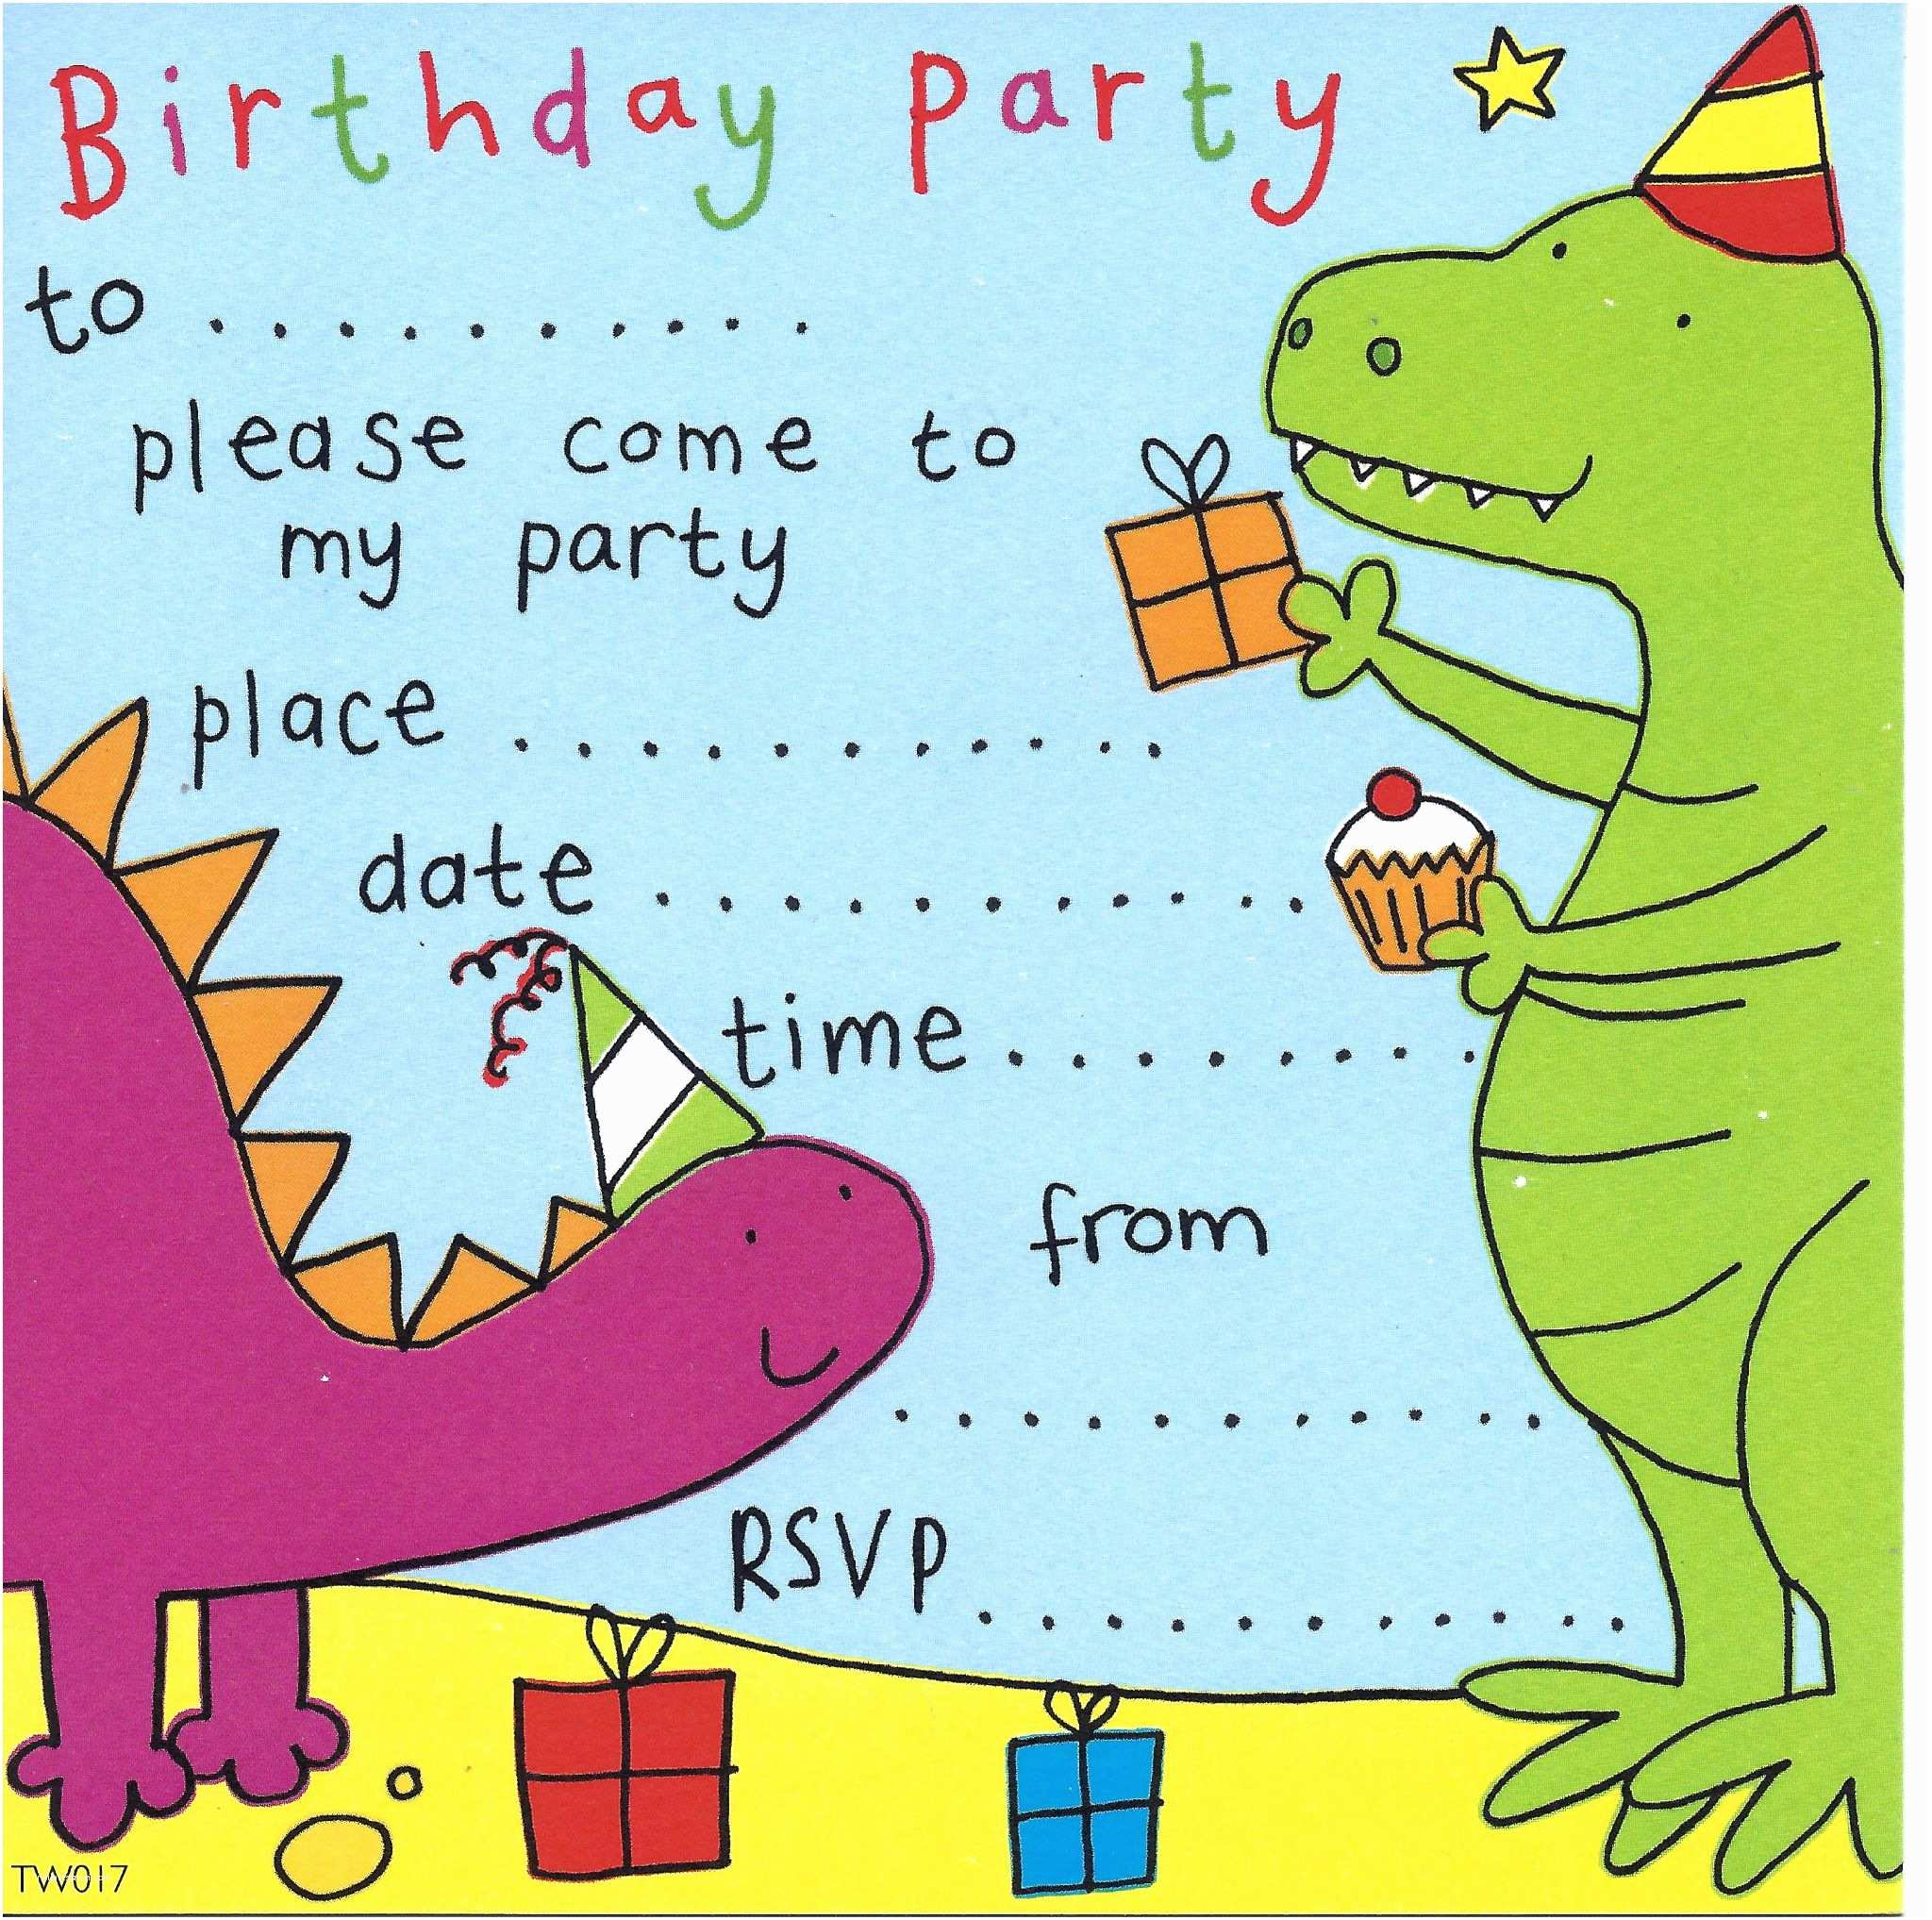 Kids Party Invitations Party Invitations Birthday Party Invitations Kids Party